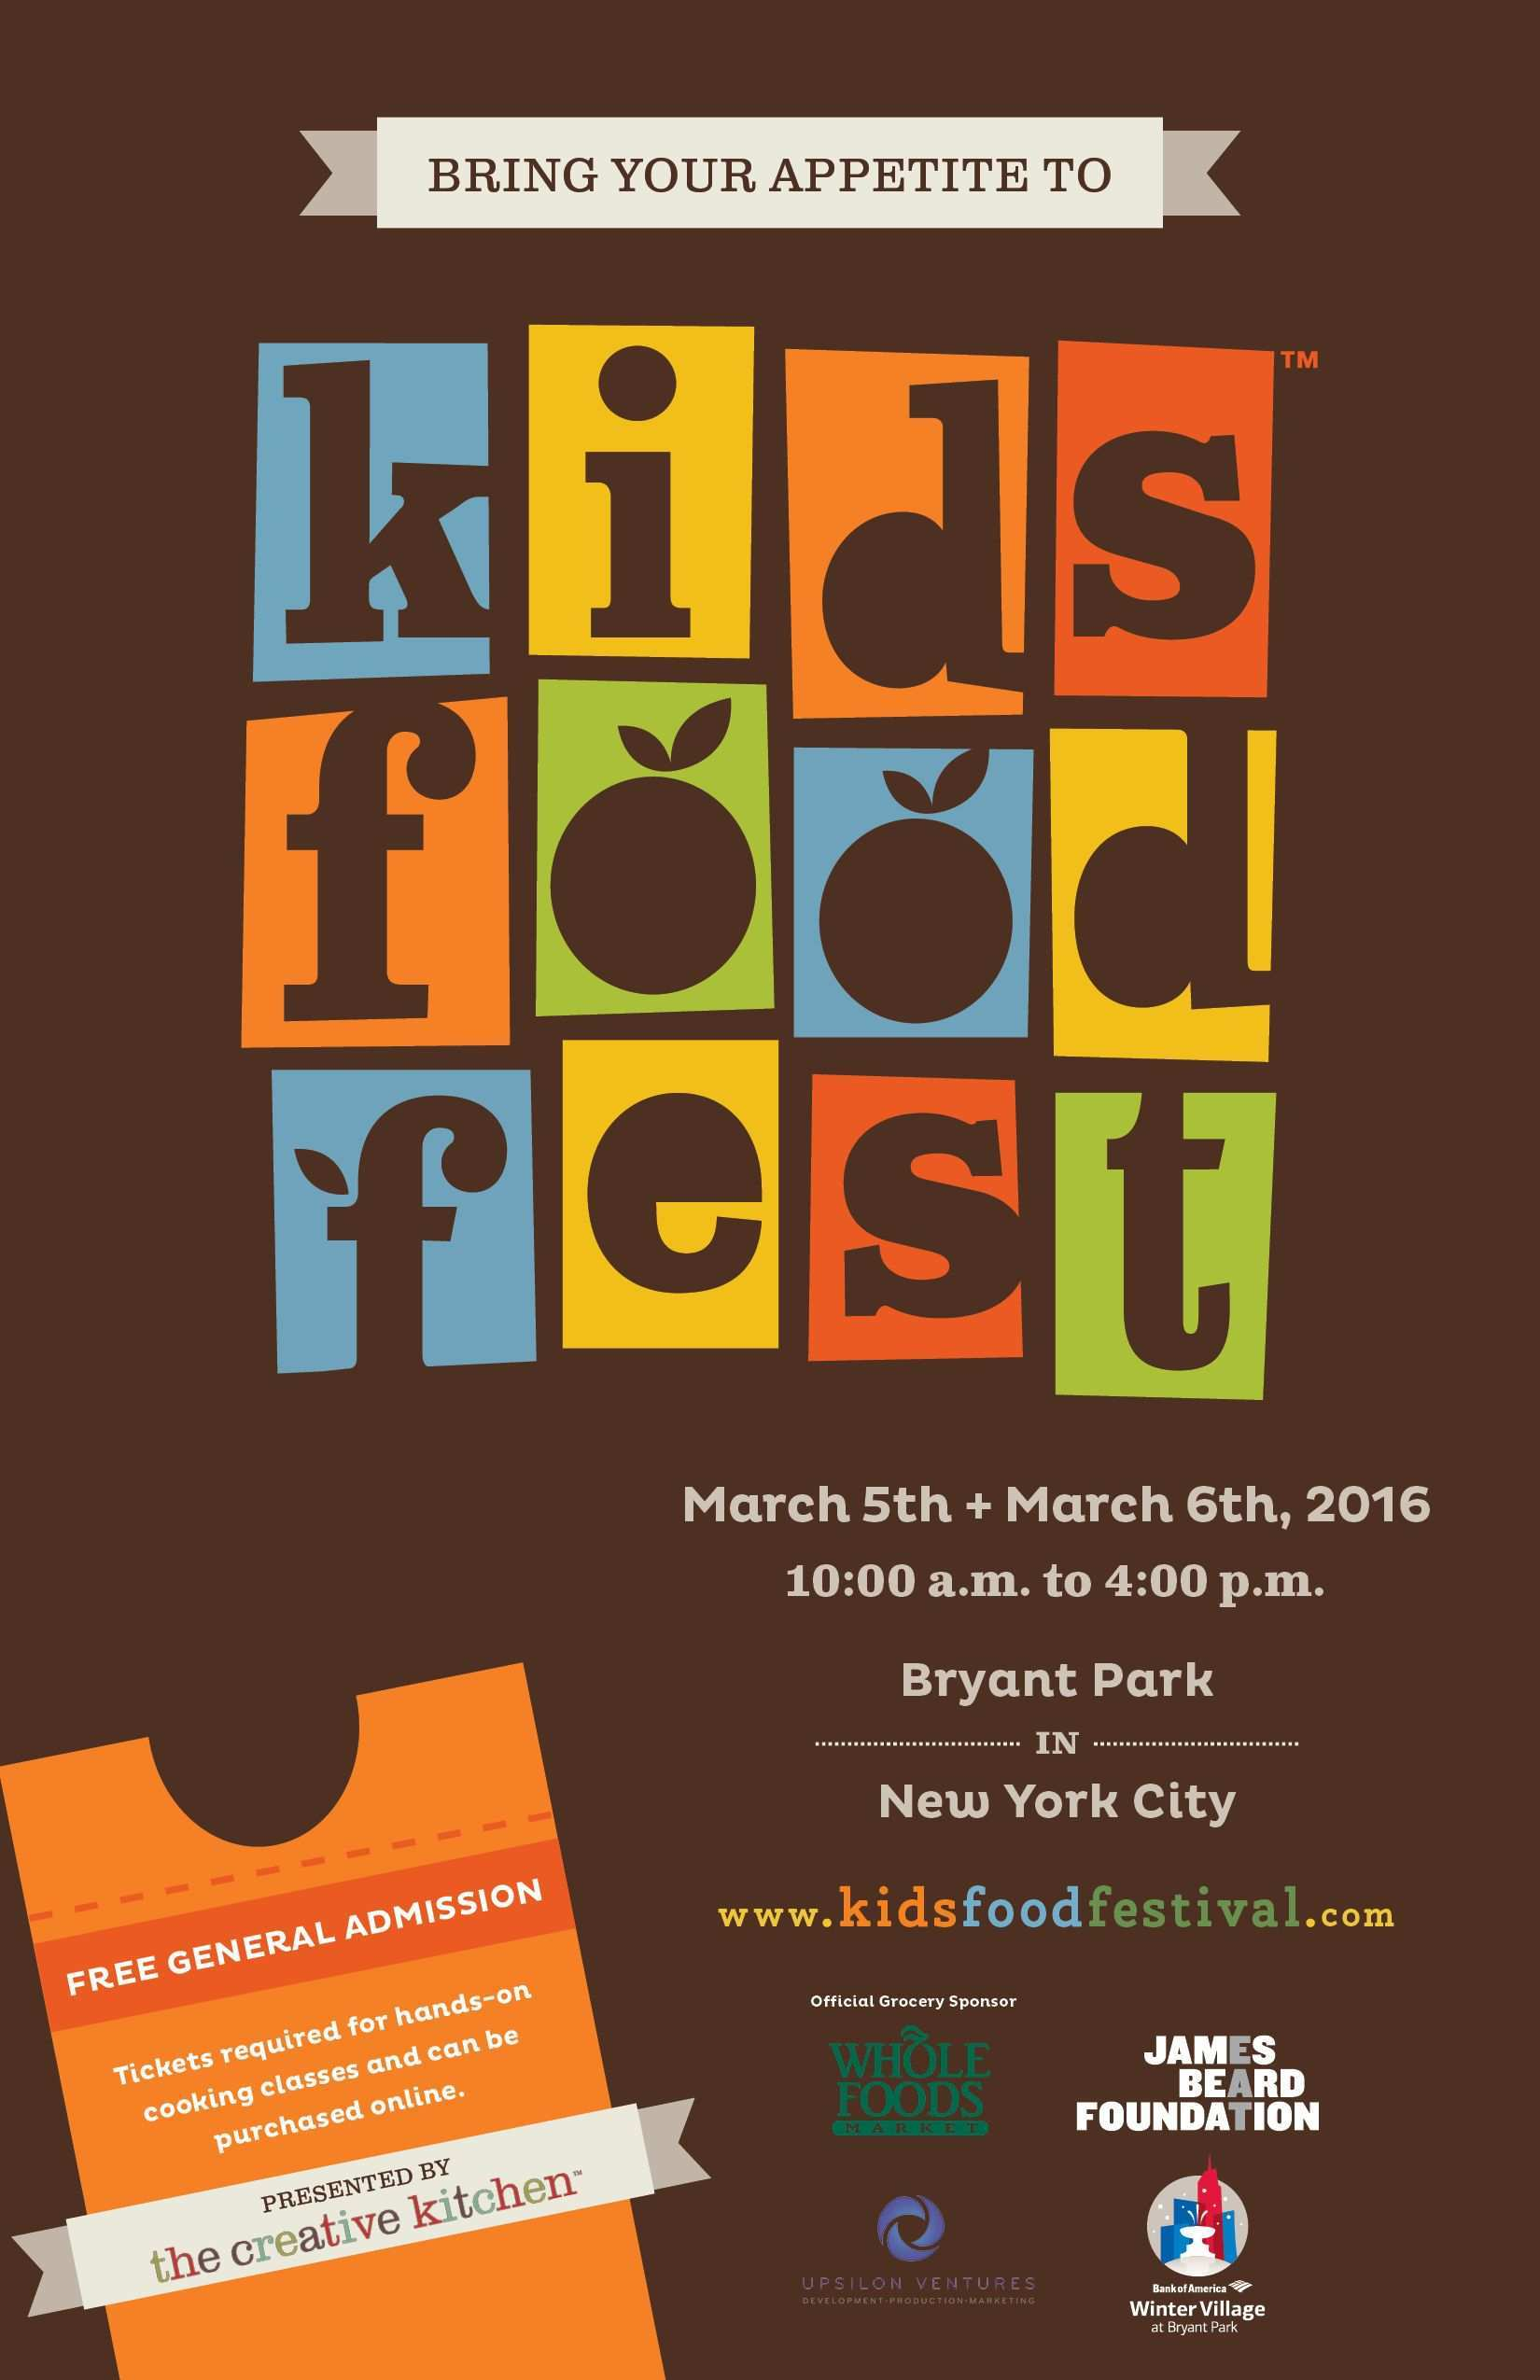 I Like How That This Poster Is Simple But The Theme Is Incorporated Into The Words Logo Though It Is Si Poster Design Kids Food Festival Poster Food Festival